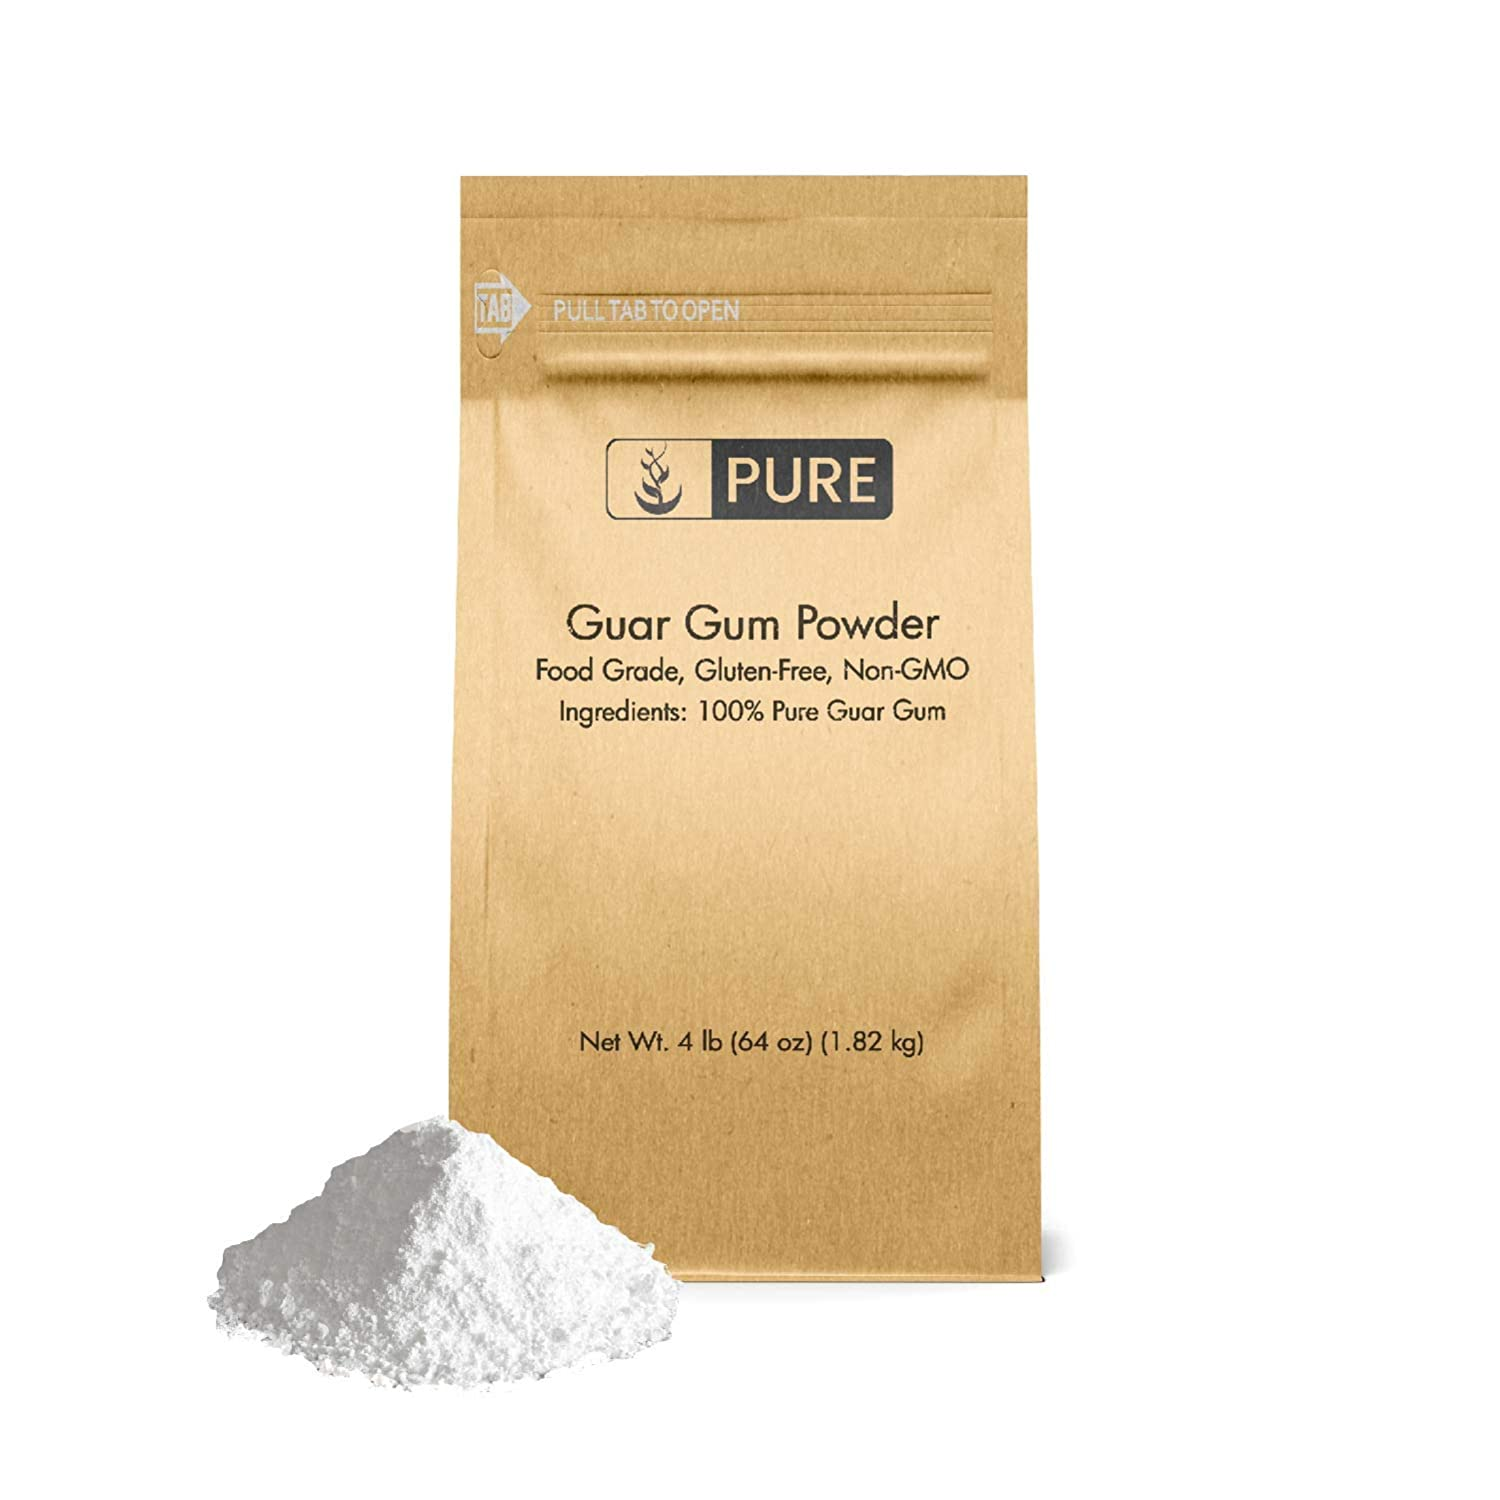 Guar Gum Powder (4 lb.) by Pure Ingredients, 100% Food Safe , Gluten-Free, Non-GMO, Thickening Agent